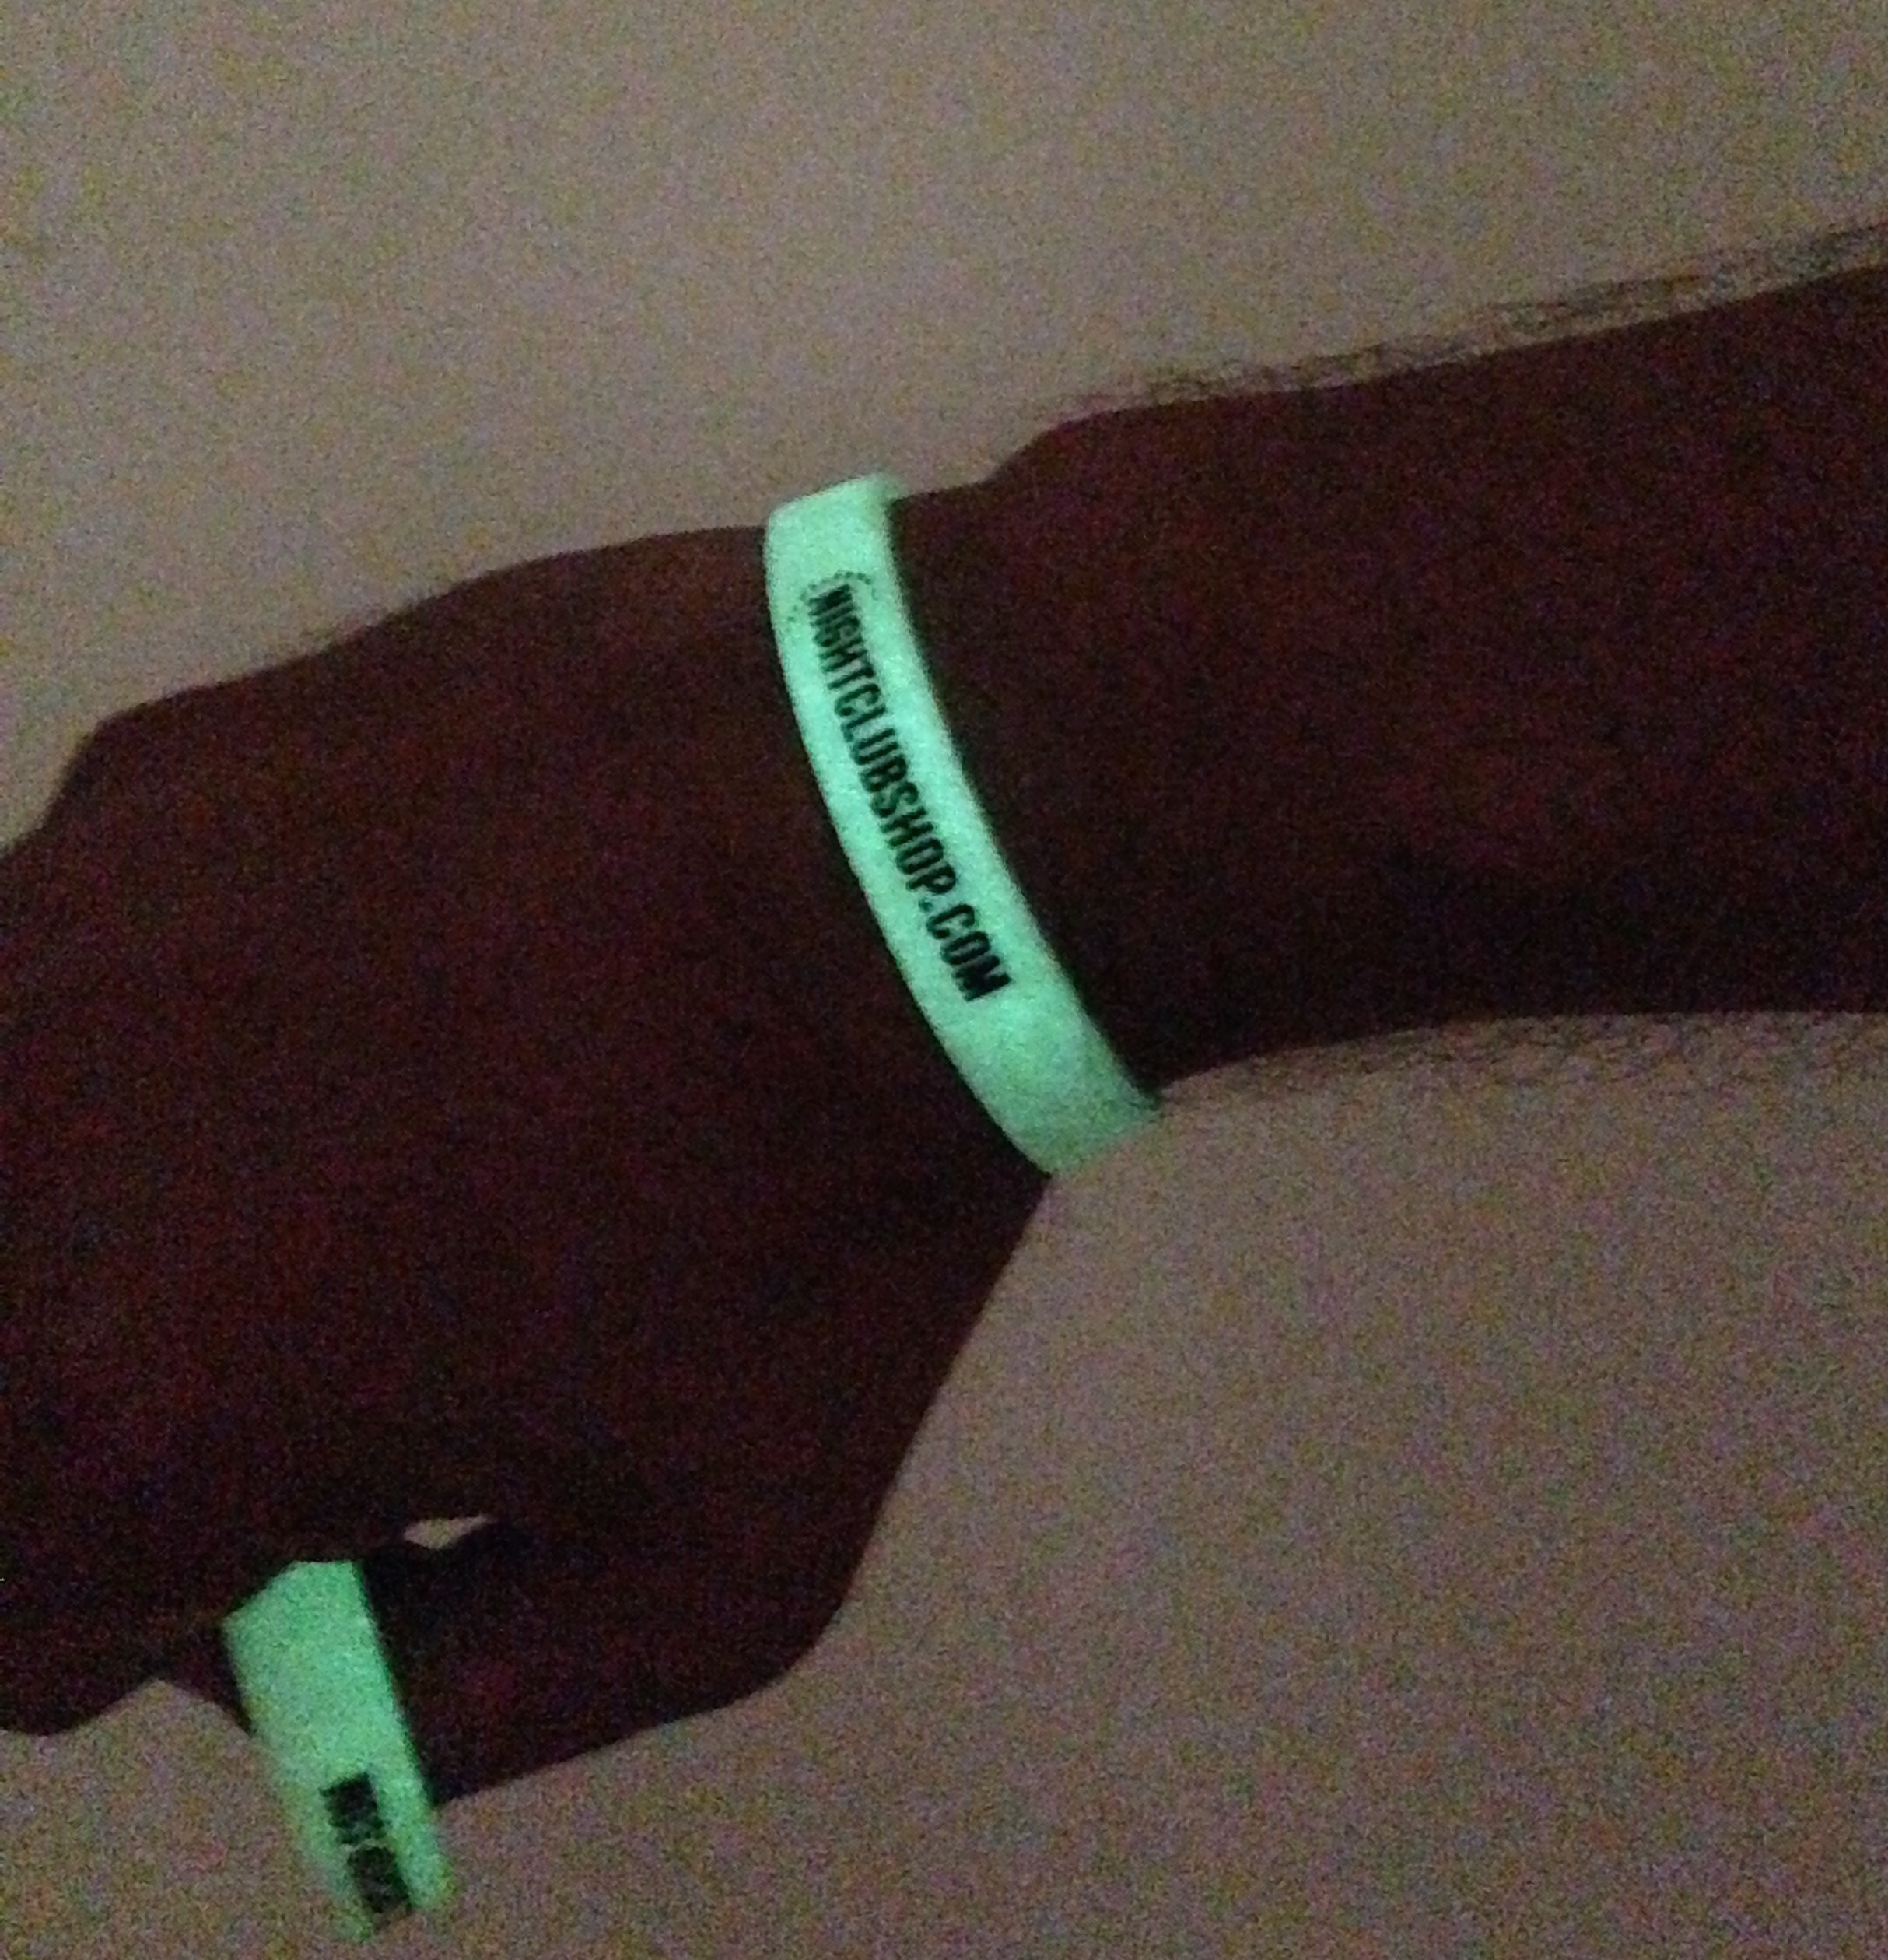 actual-picture-real-custom-glow-debossed-wristbands-nightclub-shop-glowing-.jpg